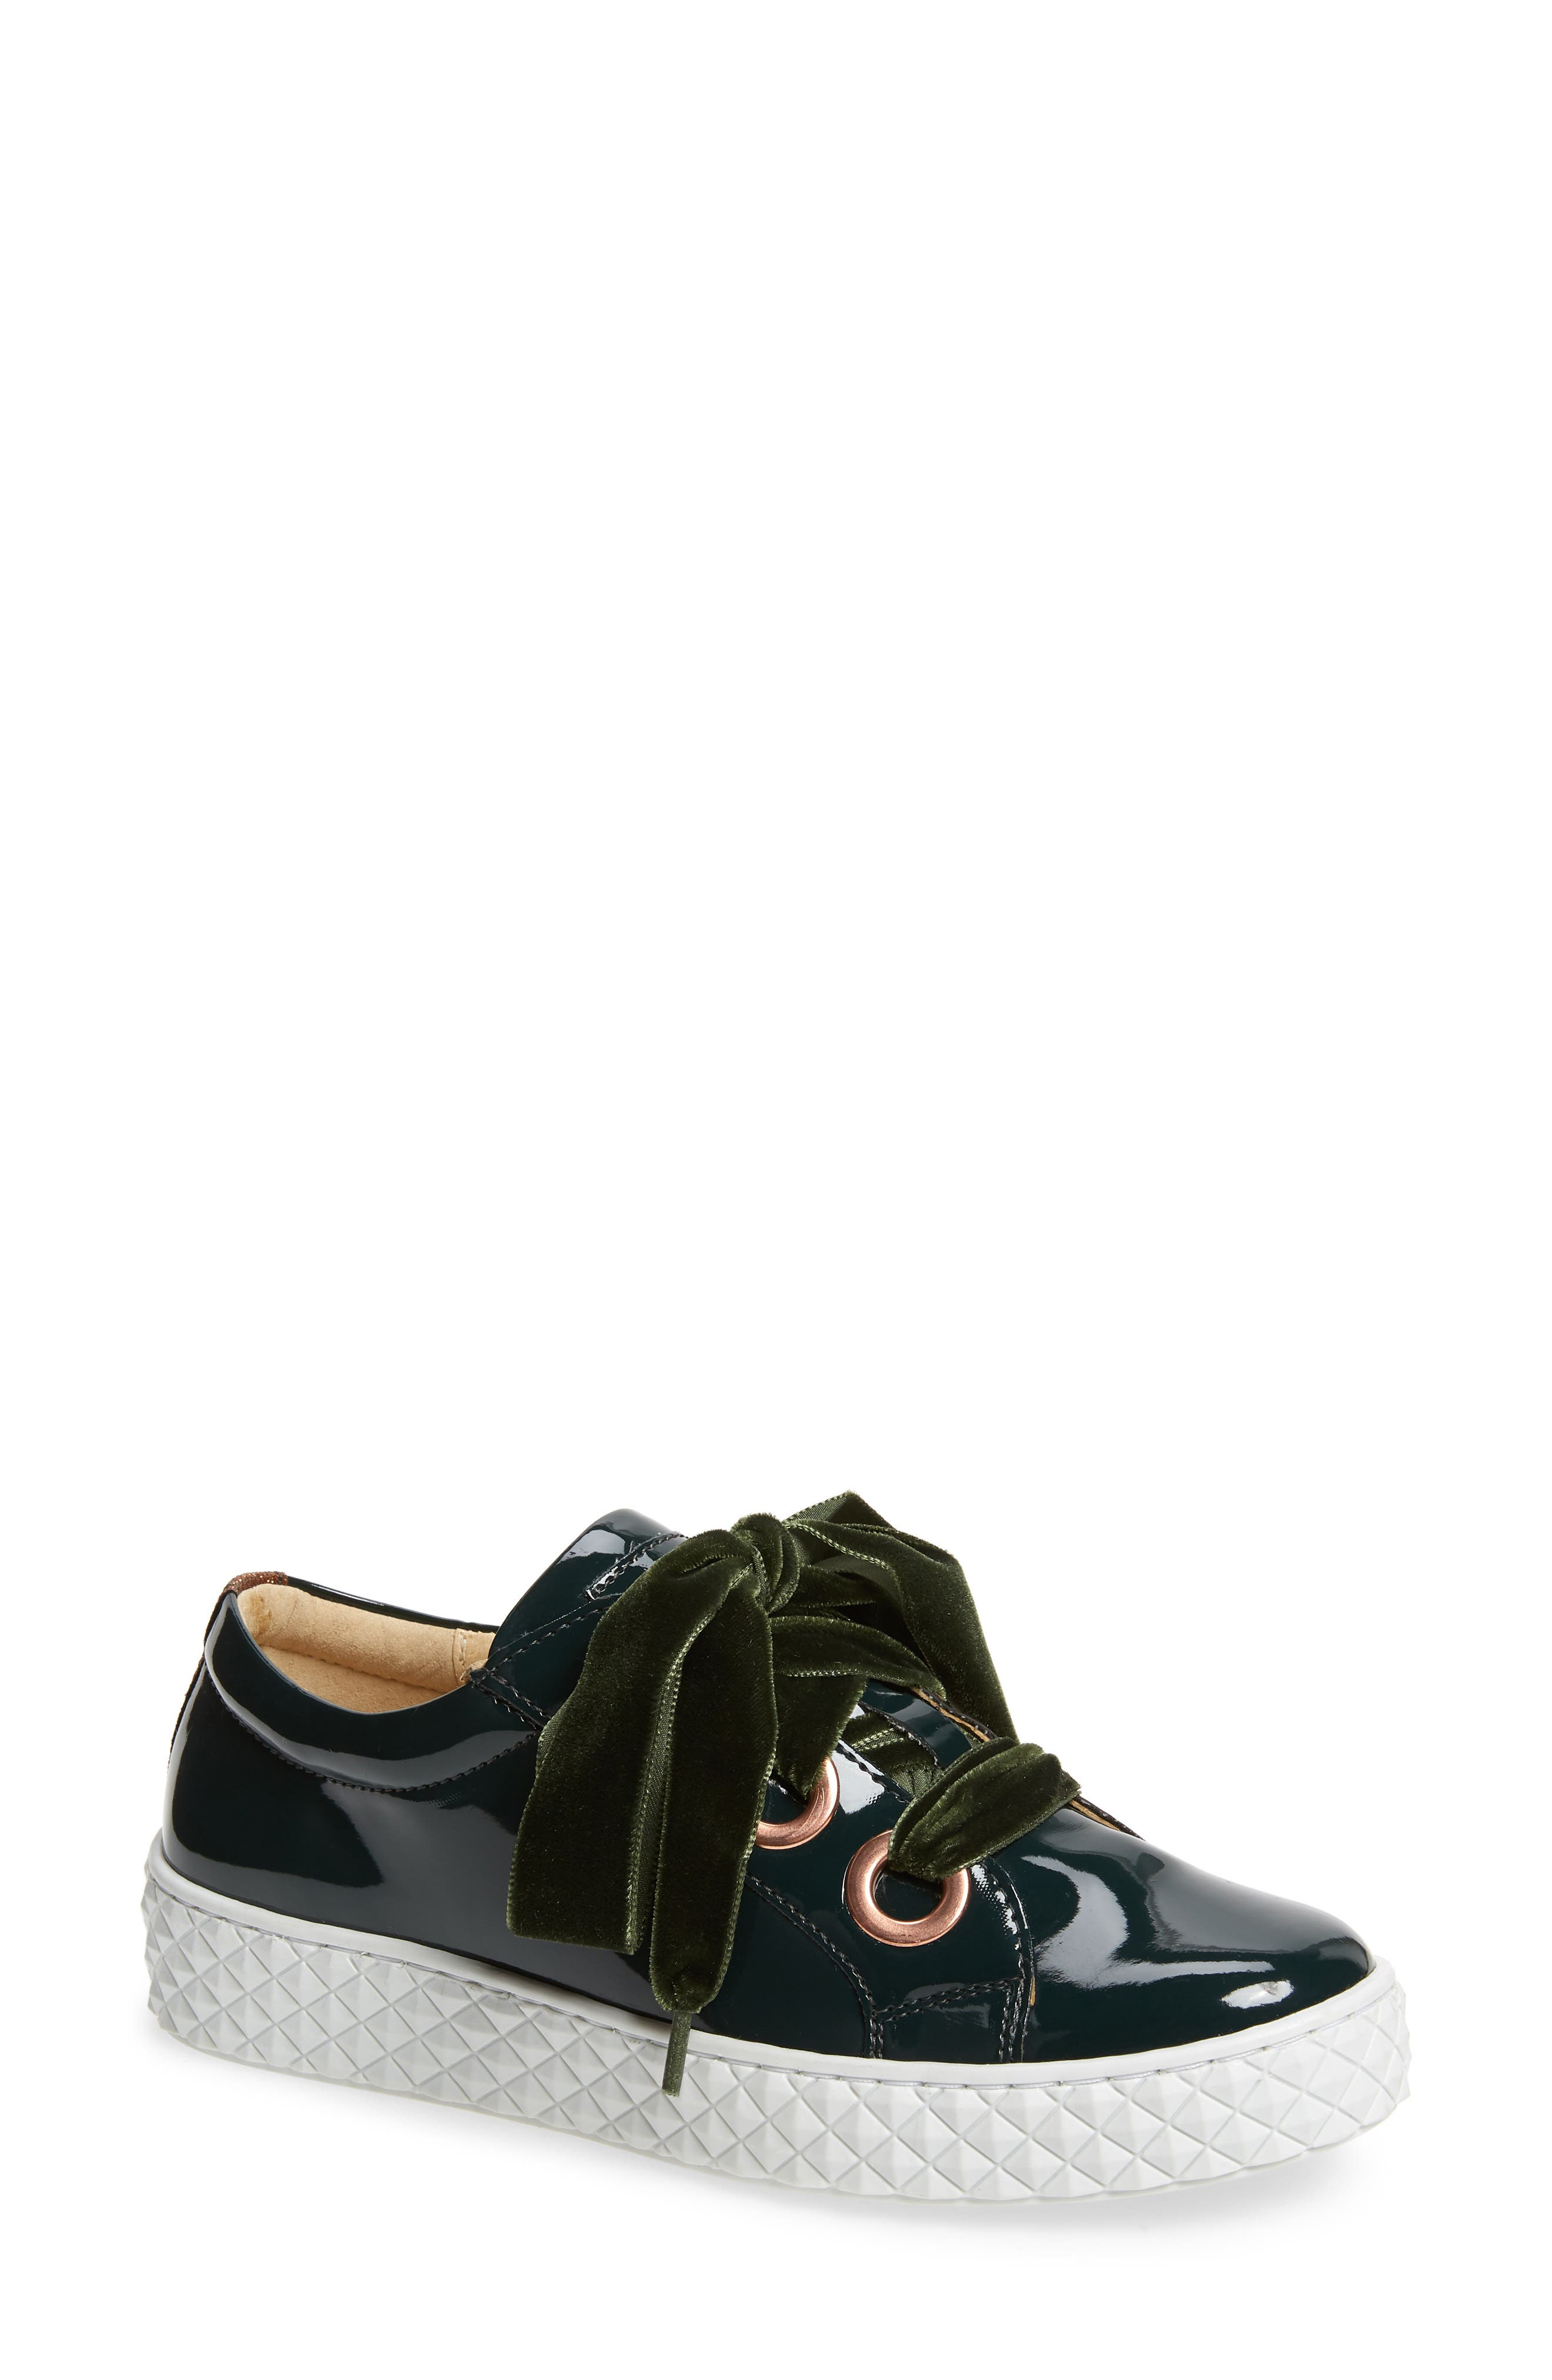 Acton III Sneaker,                         Main,                         color, BOTTLE GREEN LEATHER